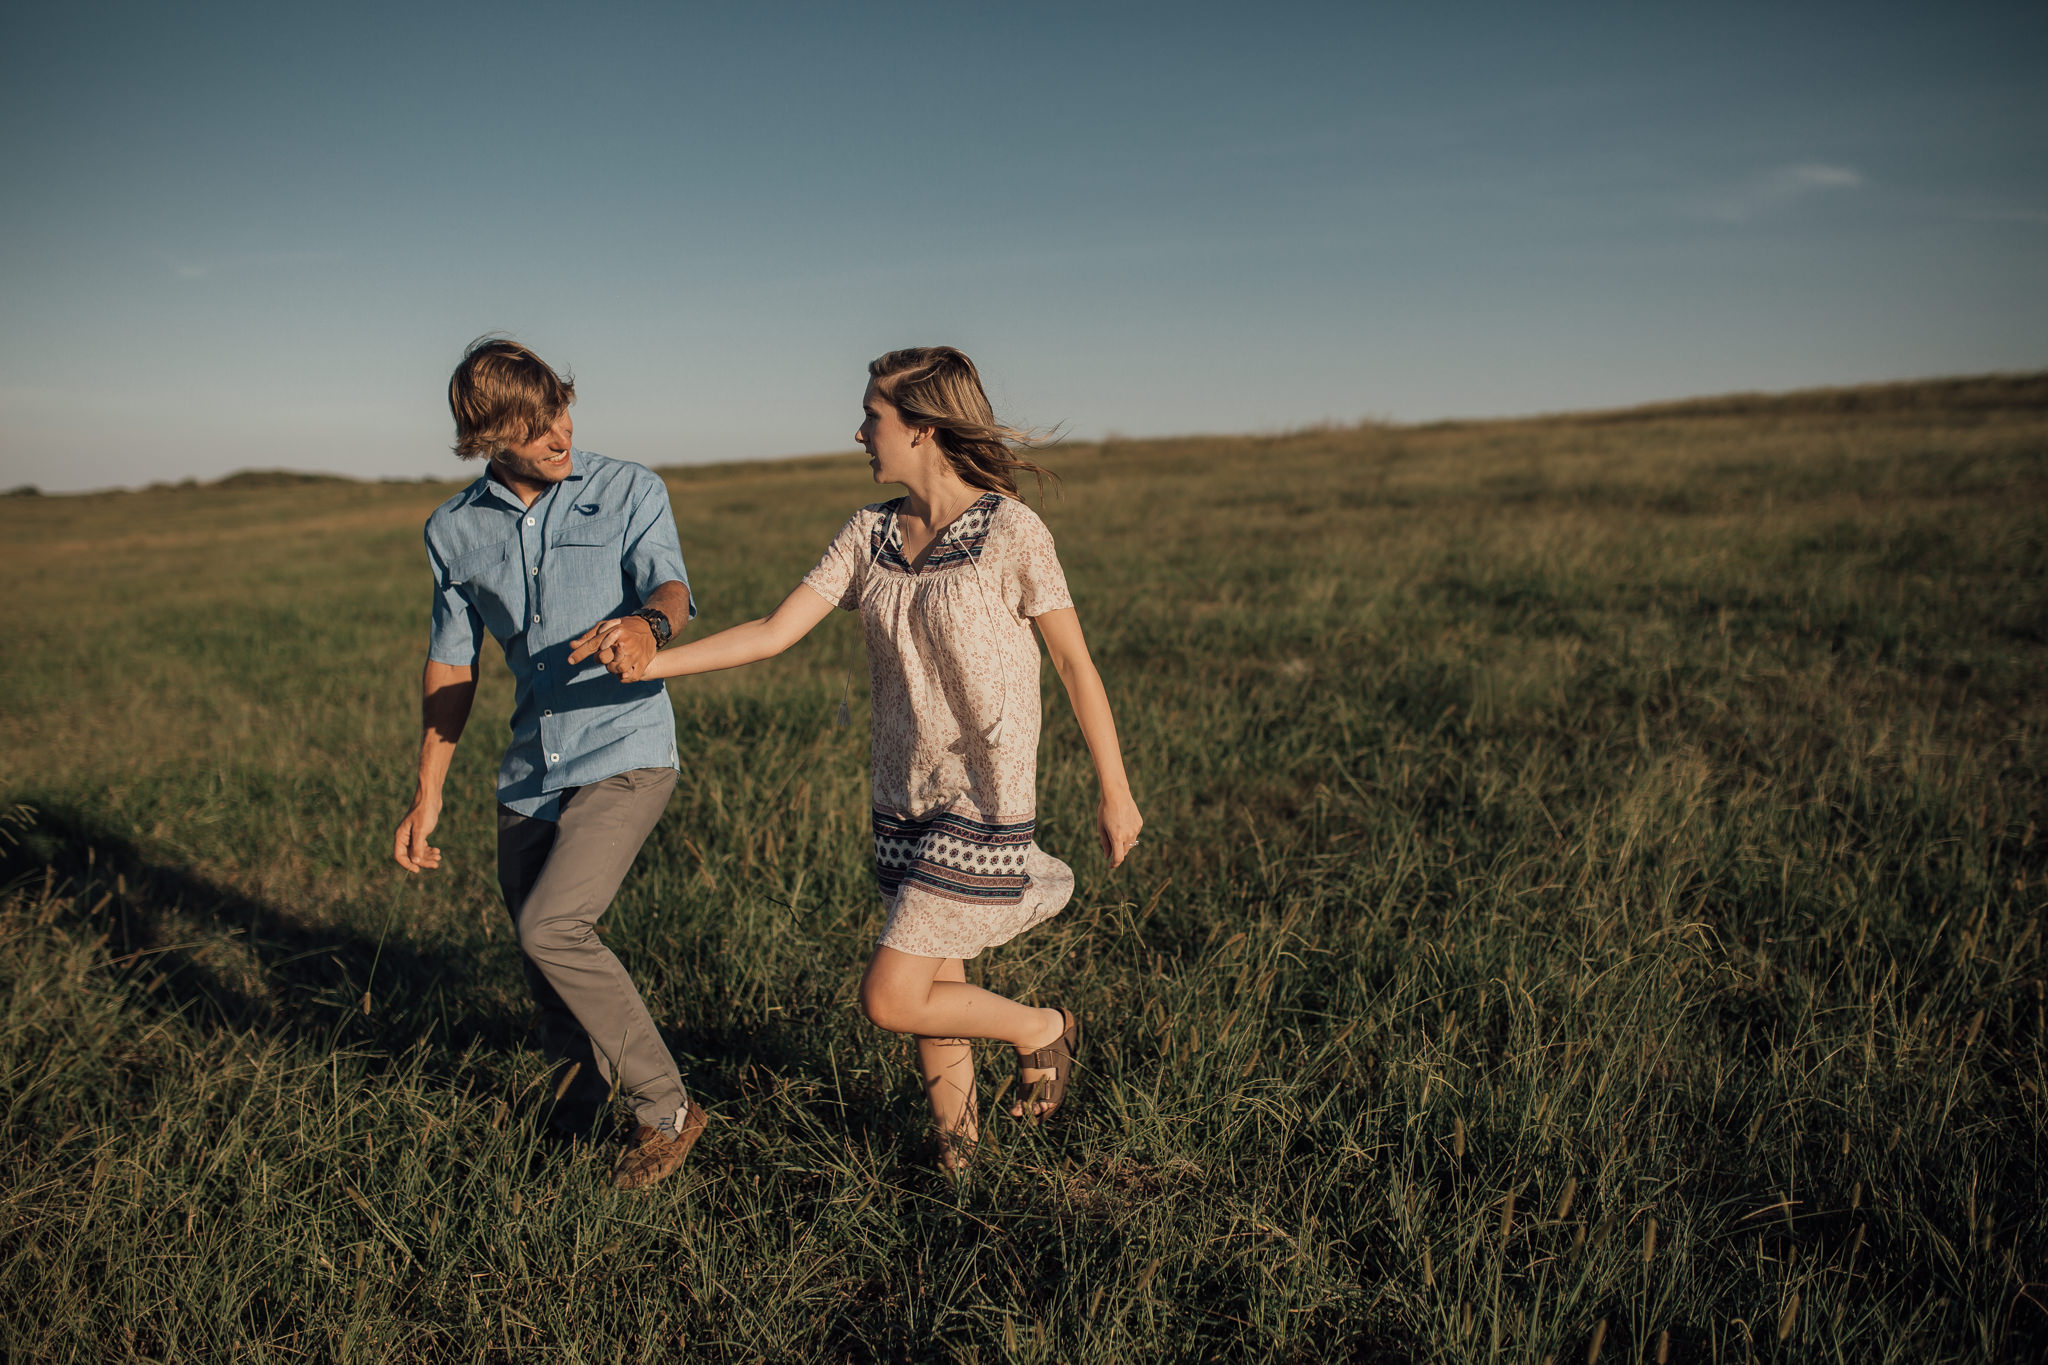 cassie-cook-photography-shelby-farms-engagment-pictures-memphis-wedding-photographer-518.jpg